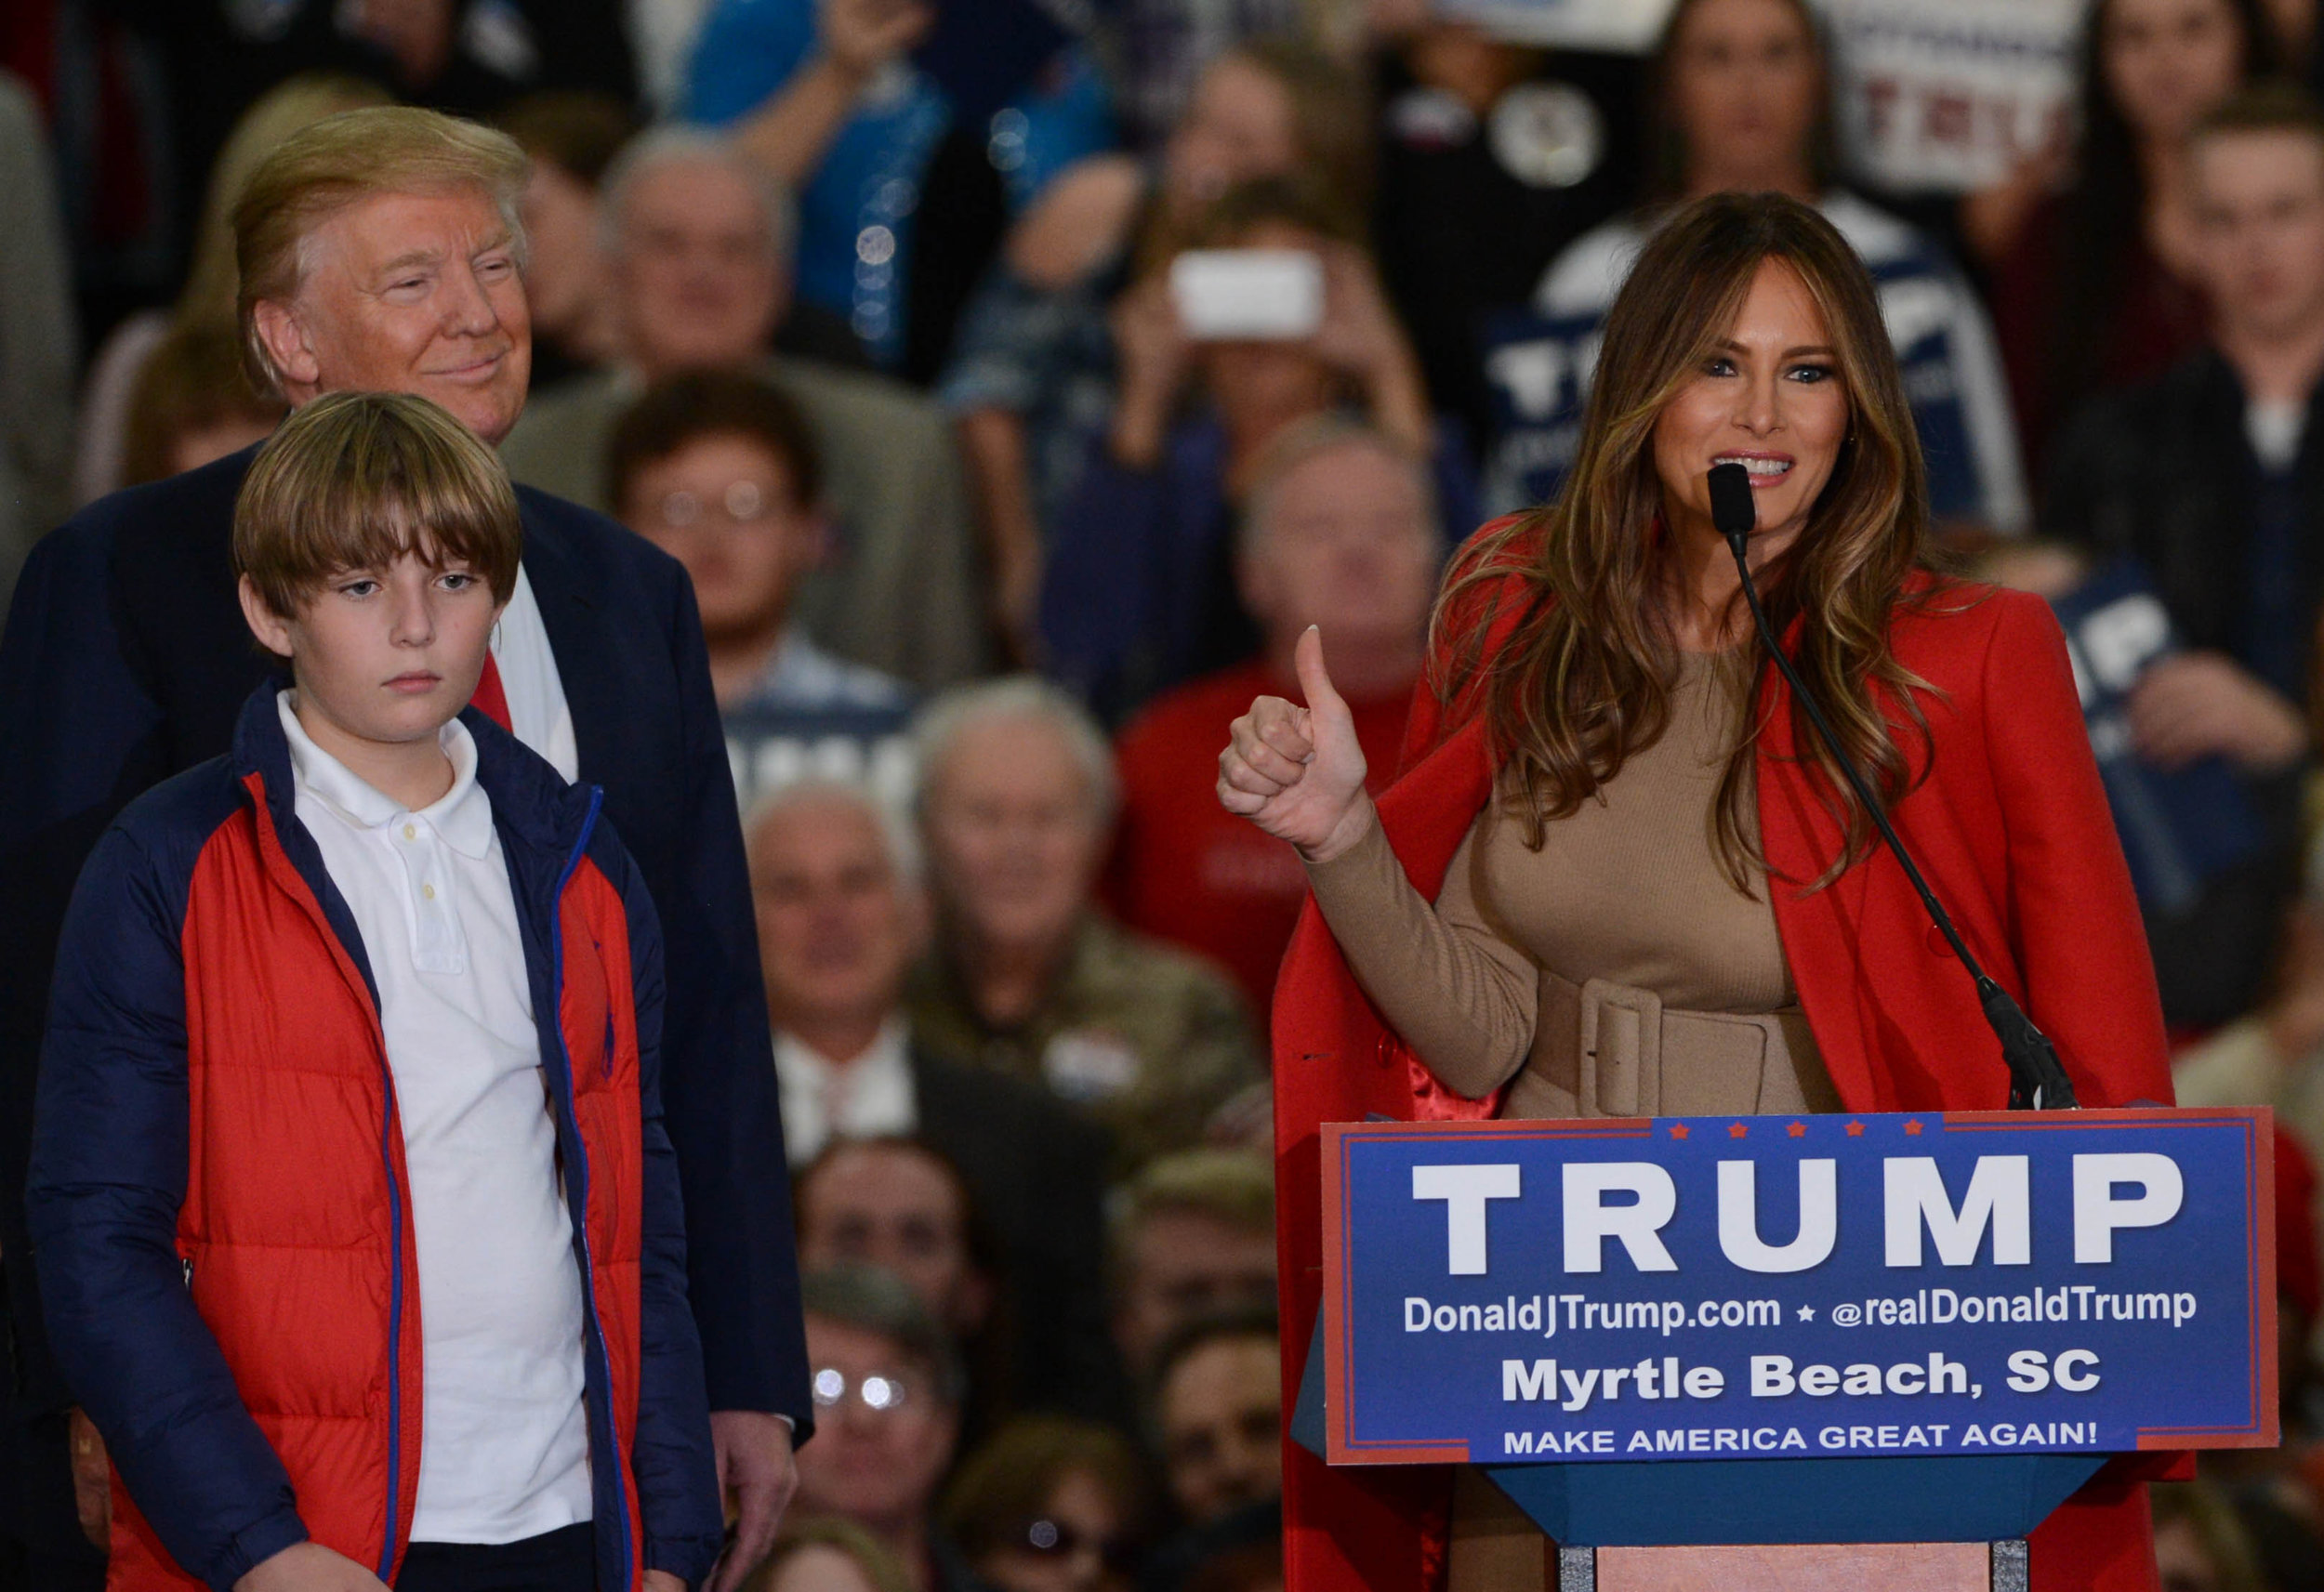 Donald, Melania and Barron Trump 2015 campaign stop in the 2016 presidential election.